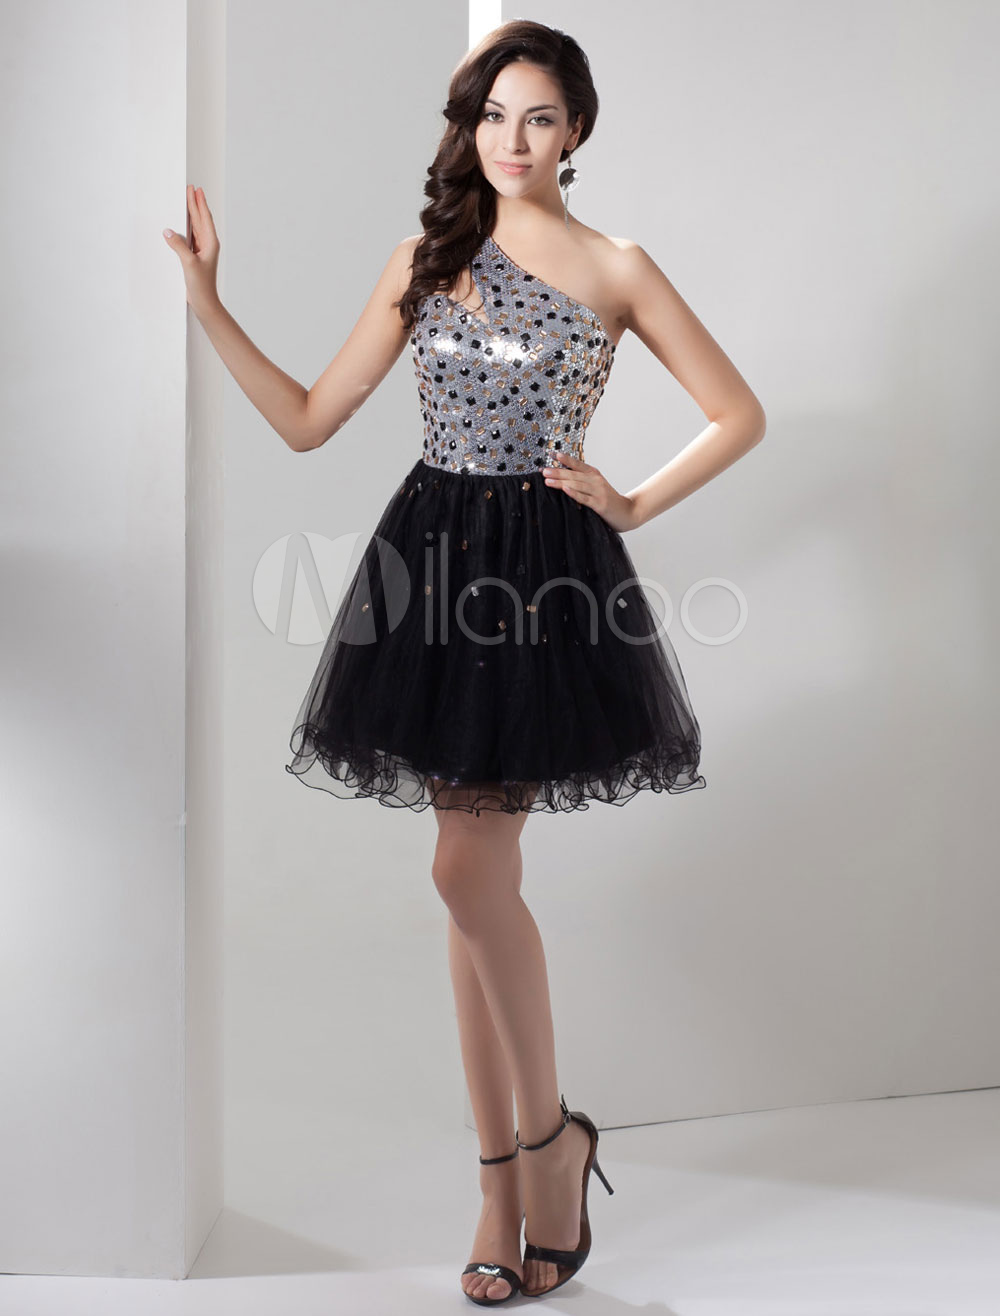 Sequin Homecoming Dress One-Shoulder Beading A-Line Tulle Short Prom Dress Keyhole Backless Cocktail Dress Milanoo